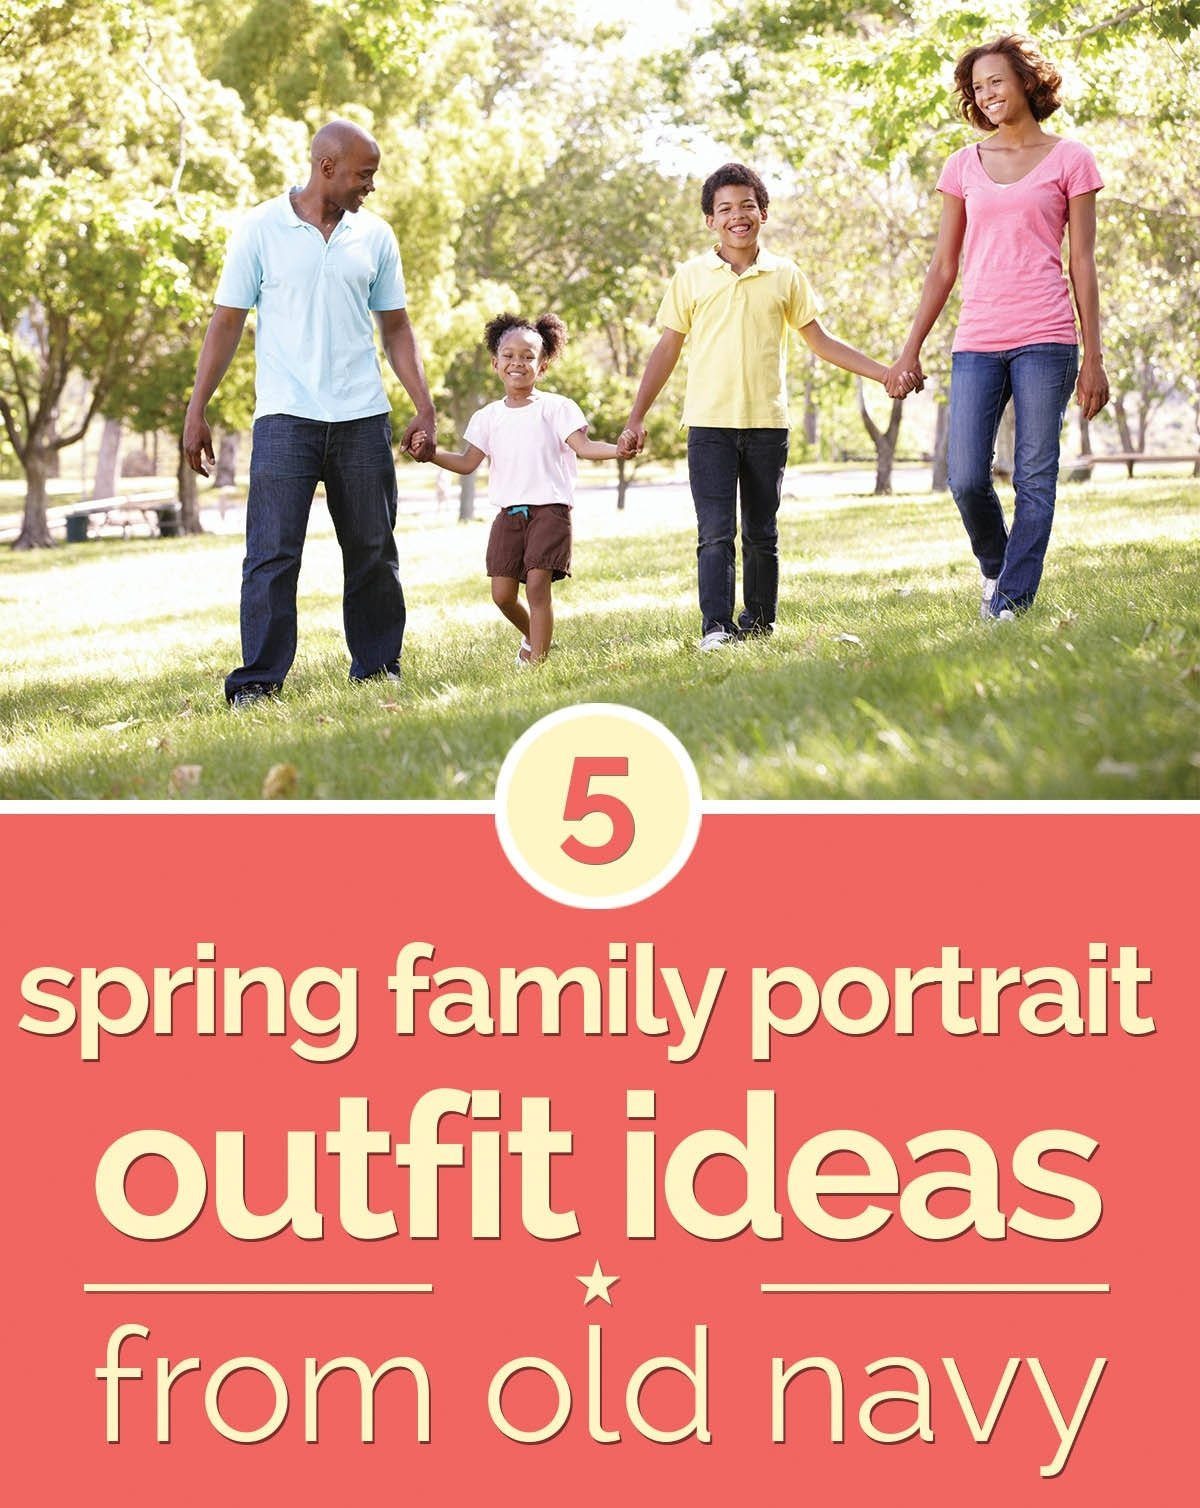 10 Perfect Ideas For Family Pictures Outfits 5 spring family portrait outfit ideas from old navy thegoodstuff 3 2020